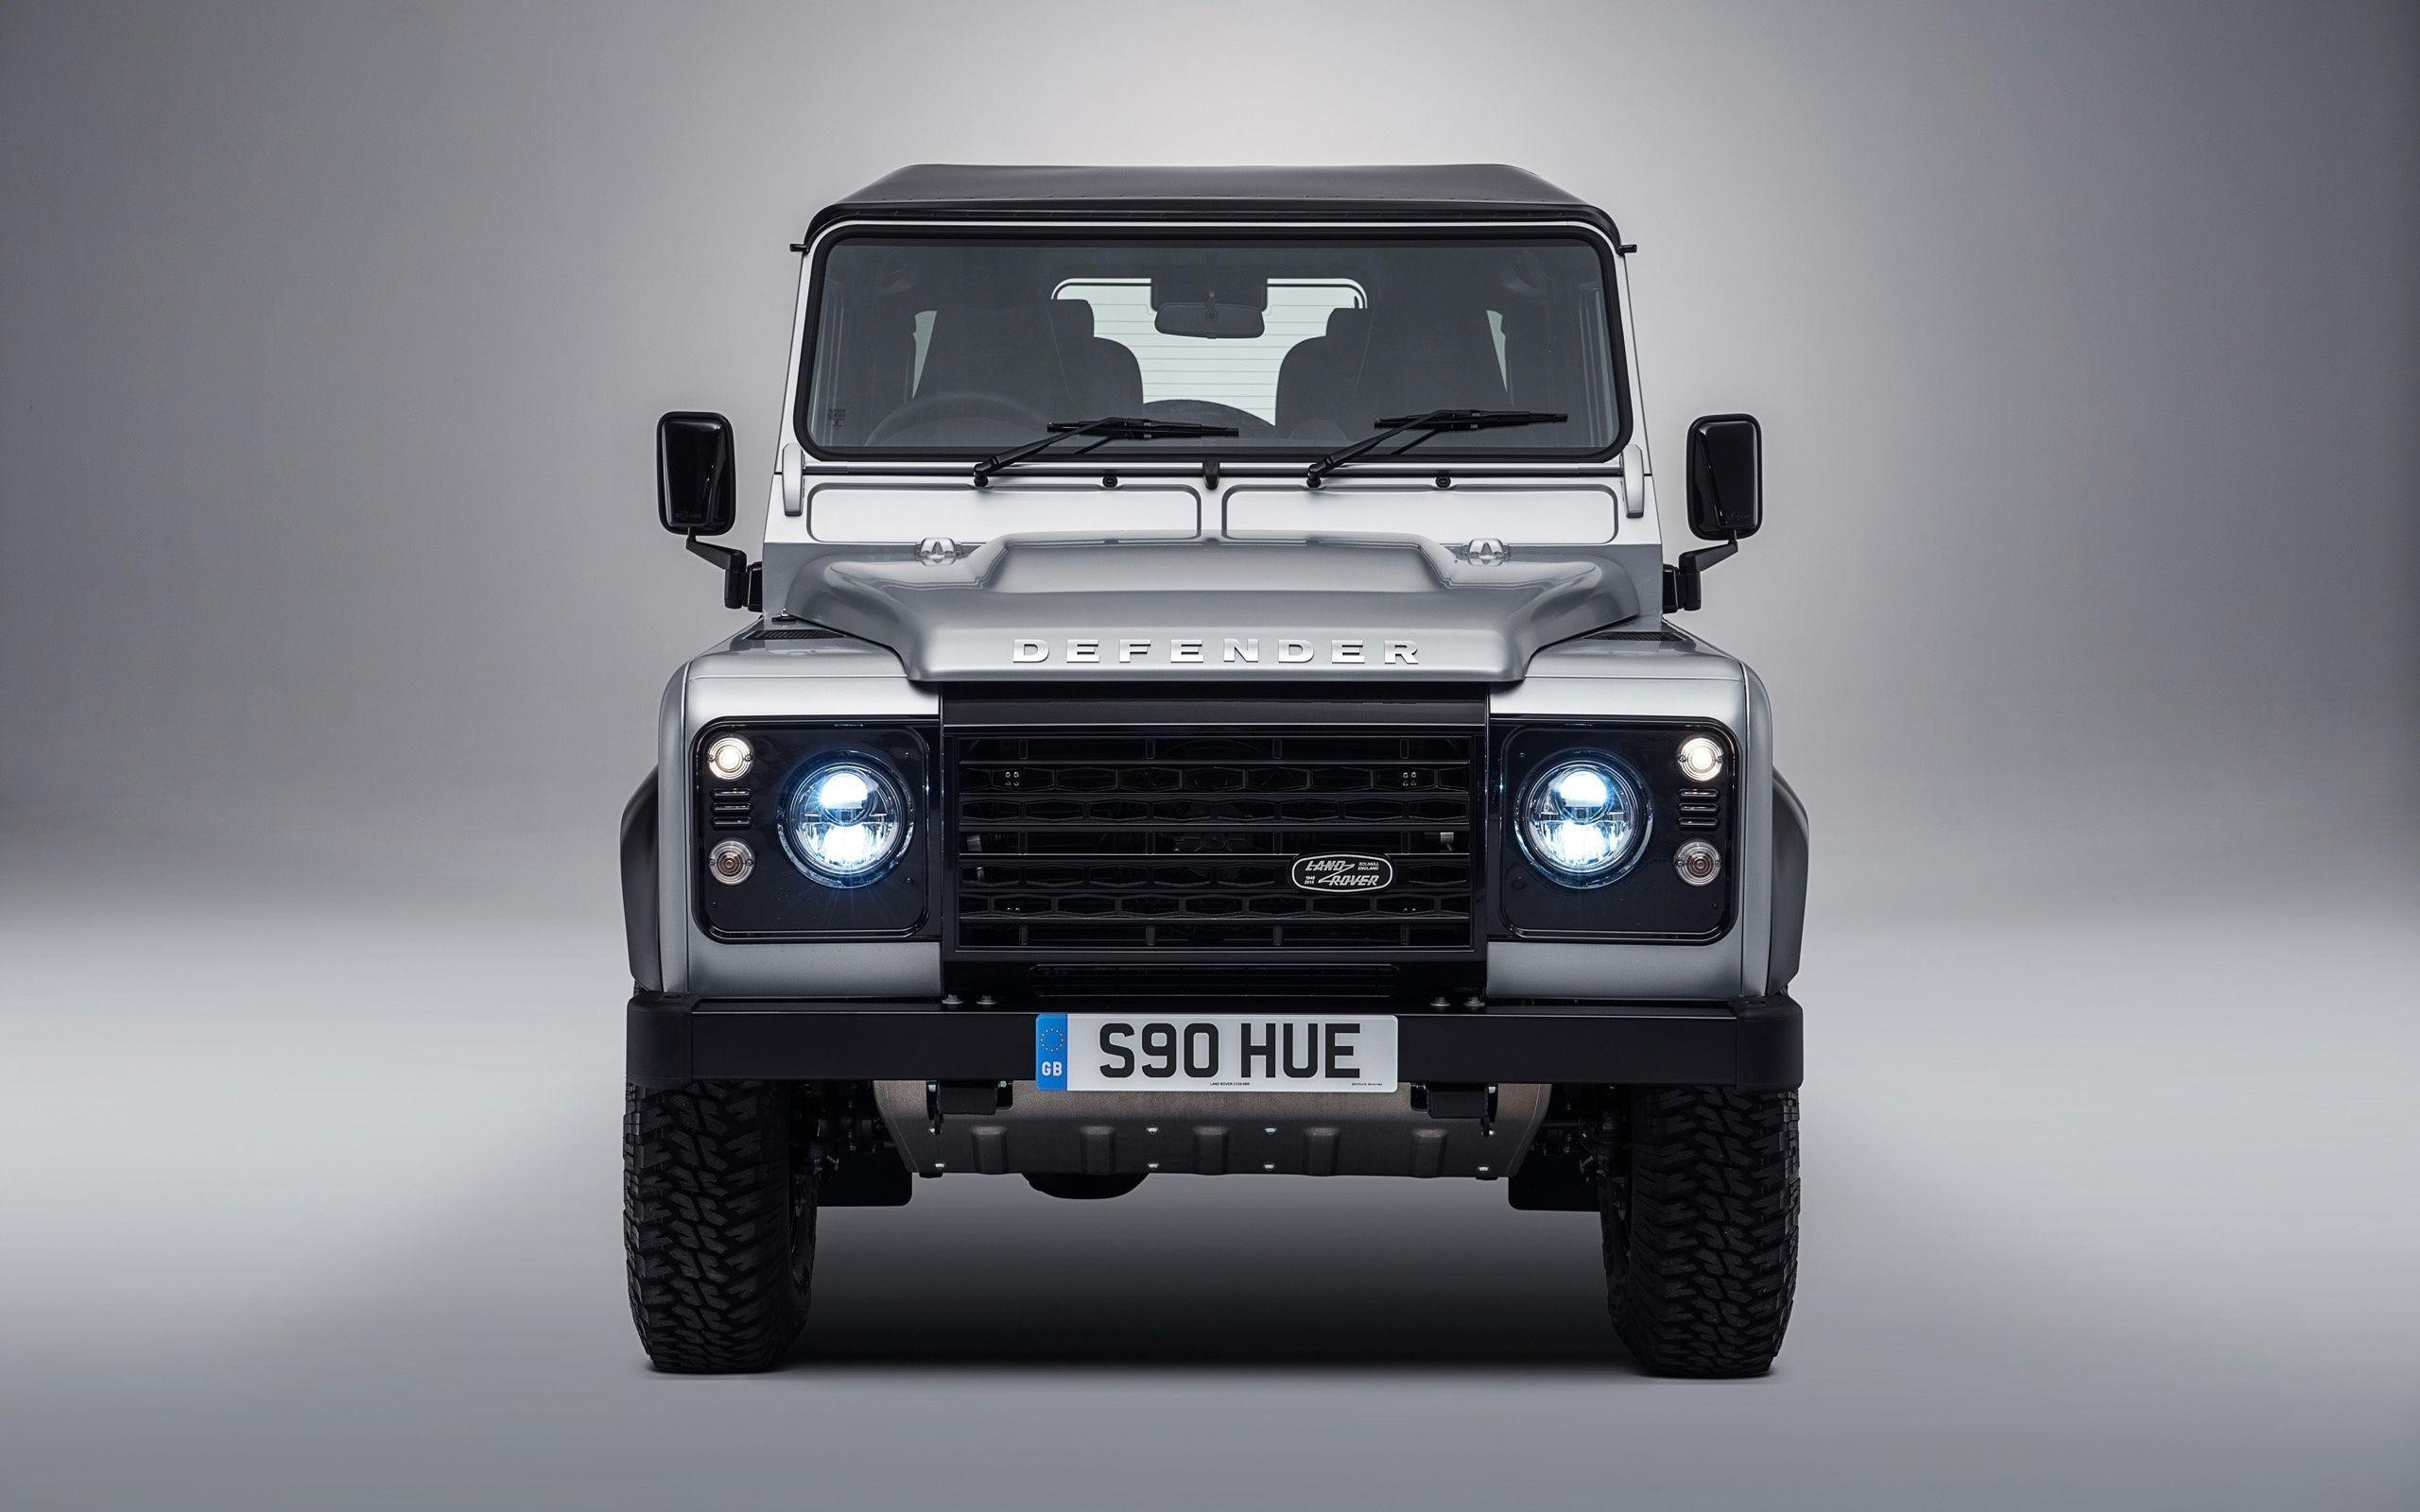 2015 Land Rover Defender 2 Wallpaper | HD Car Wallpapers